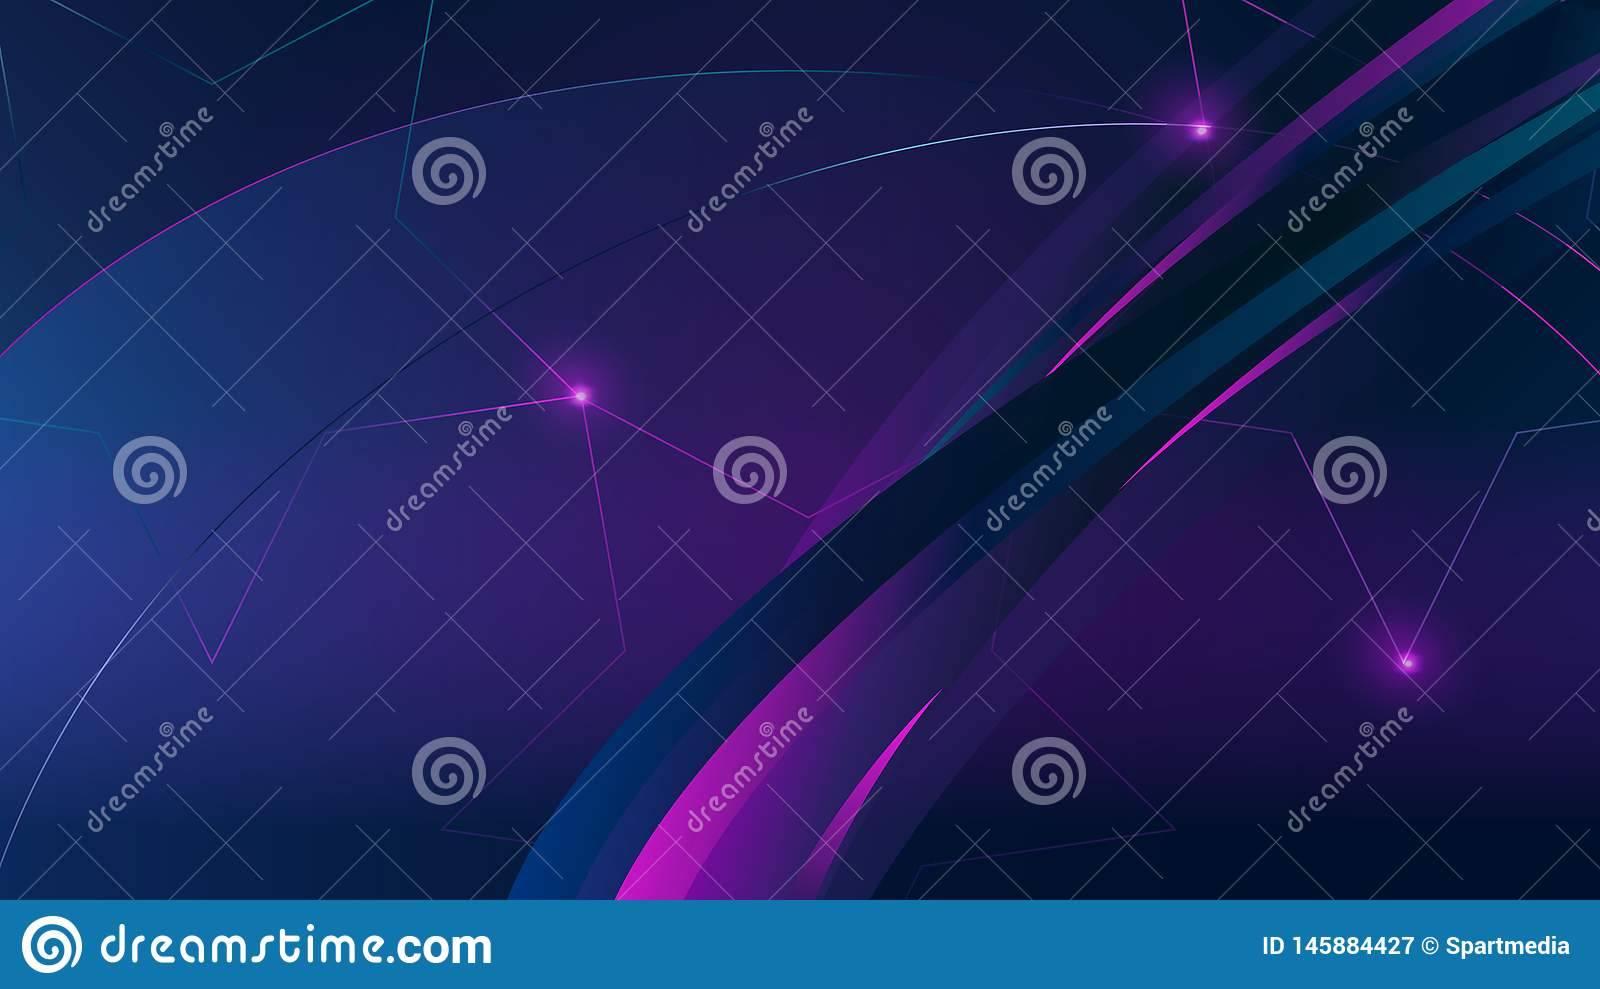 euro 2019 european soccer championship wallpaper uefa champions league banner stock vector illustration of icon finals 145884427 https www dreamstime com abstract fluid color background summer travel sale banner colorful shapes wavy geometric modern design minimal vector wallpaper image145884427